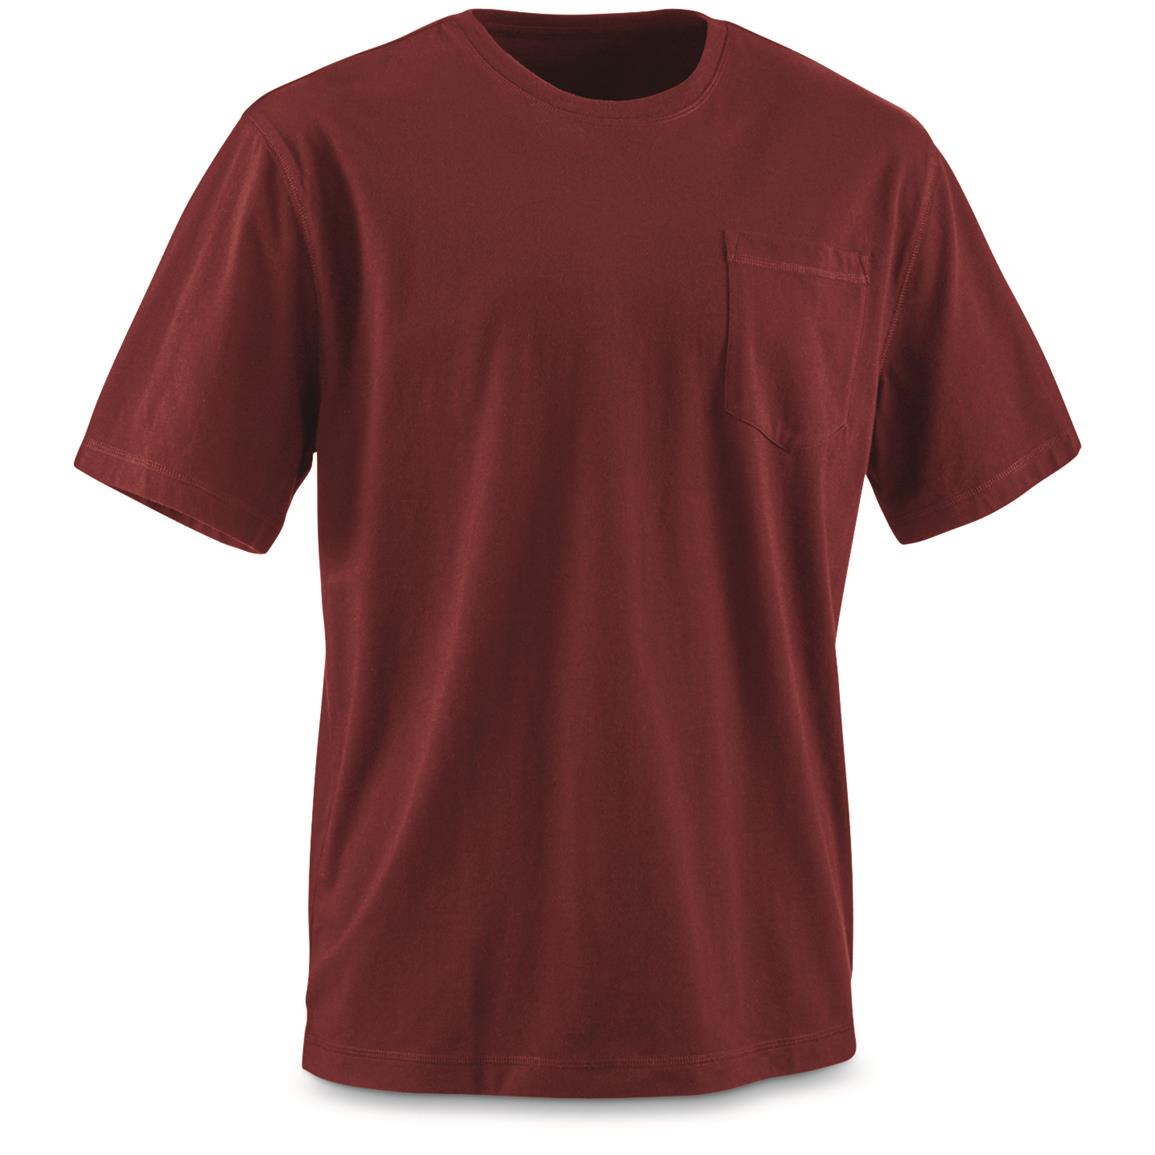 Guide Gear Men's Stain Kicker Short Sleeve Pocket T Shirt With Teflon, Red Cardinal